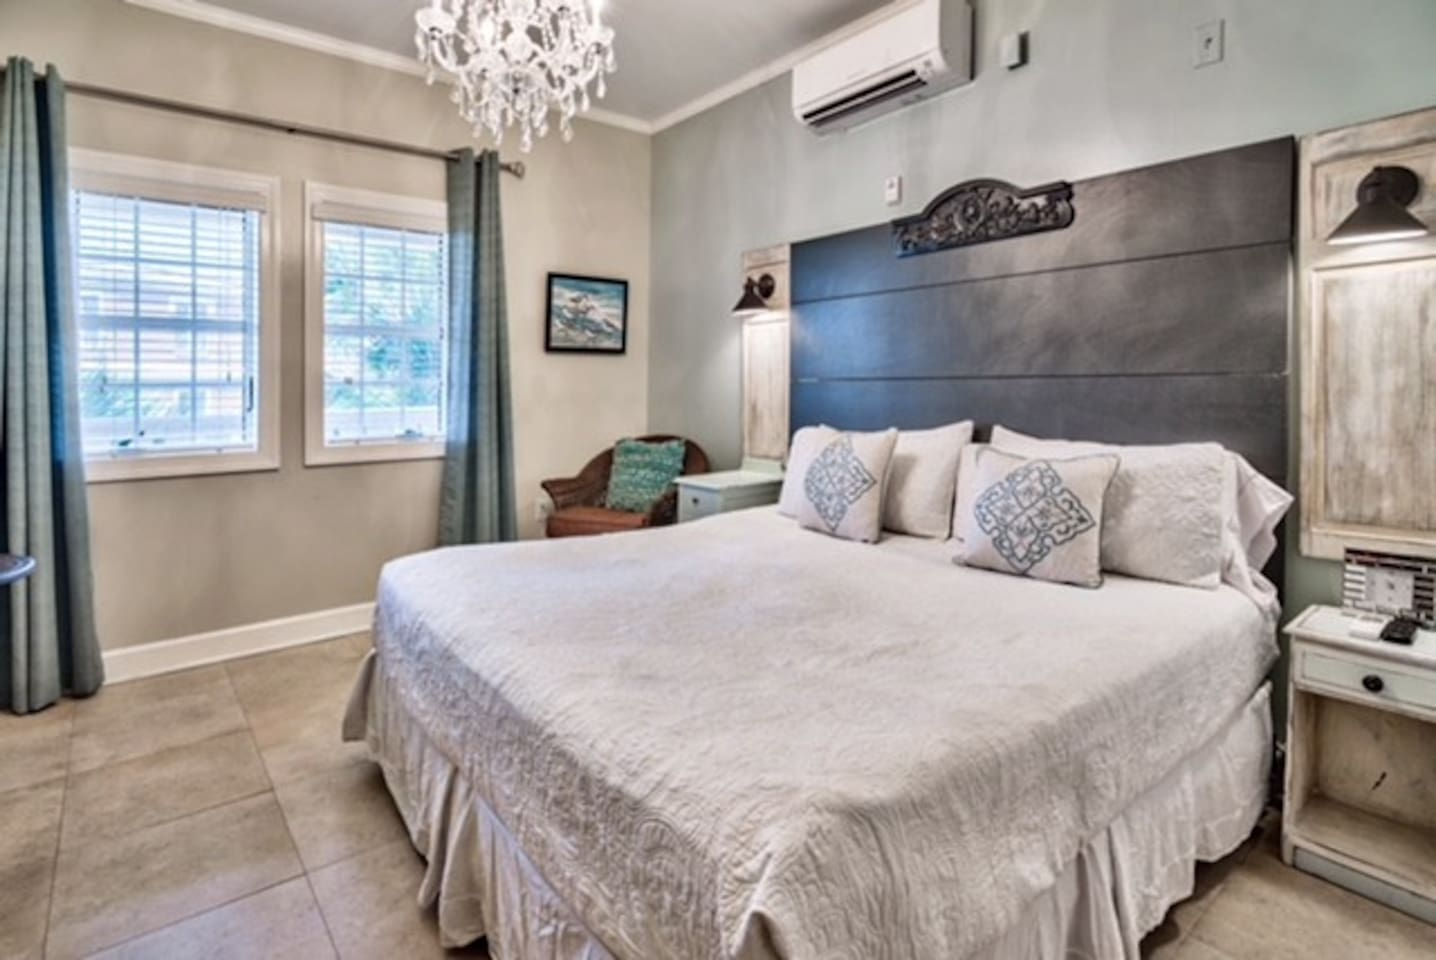 Stunning Updated Studio Right on 30A. Perfect getaway for 2!